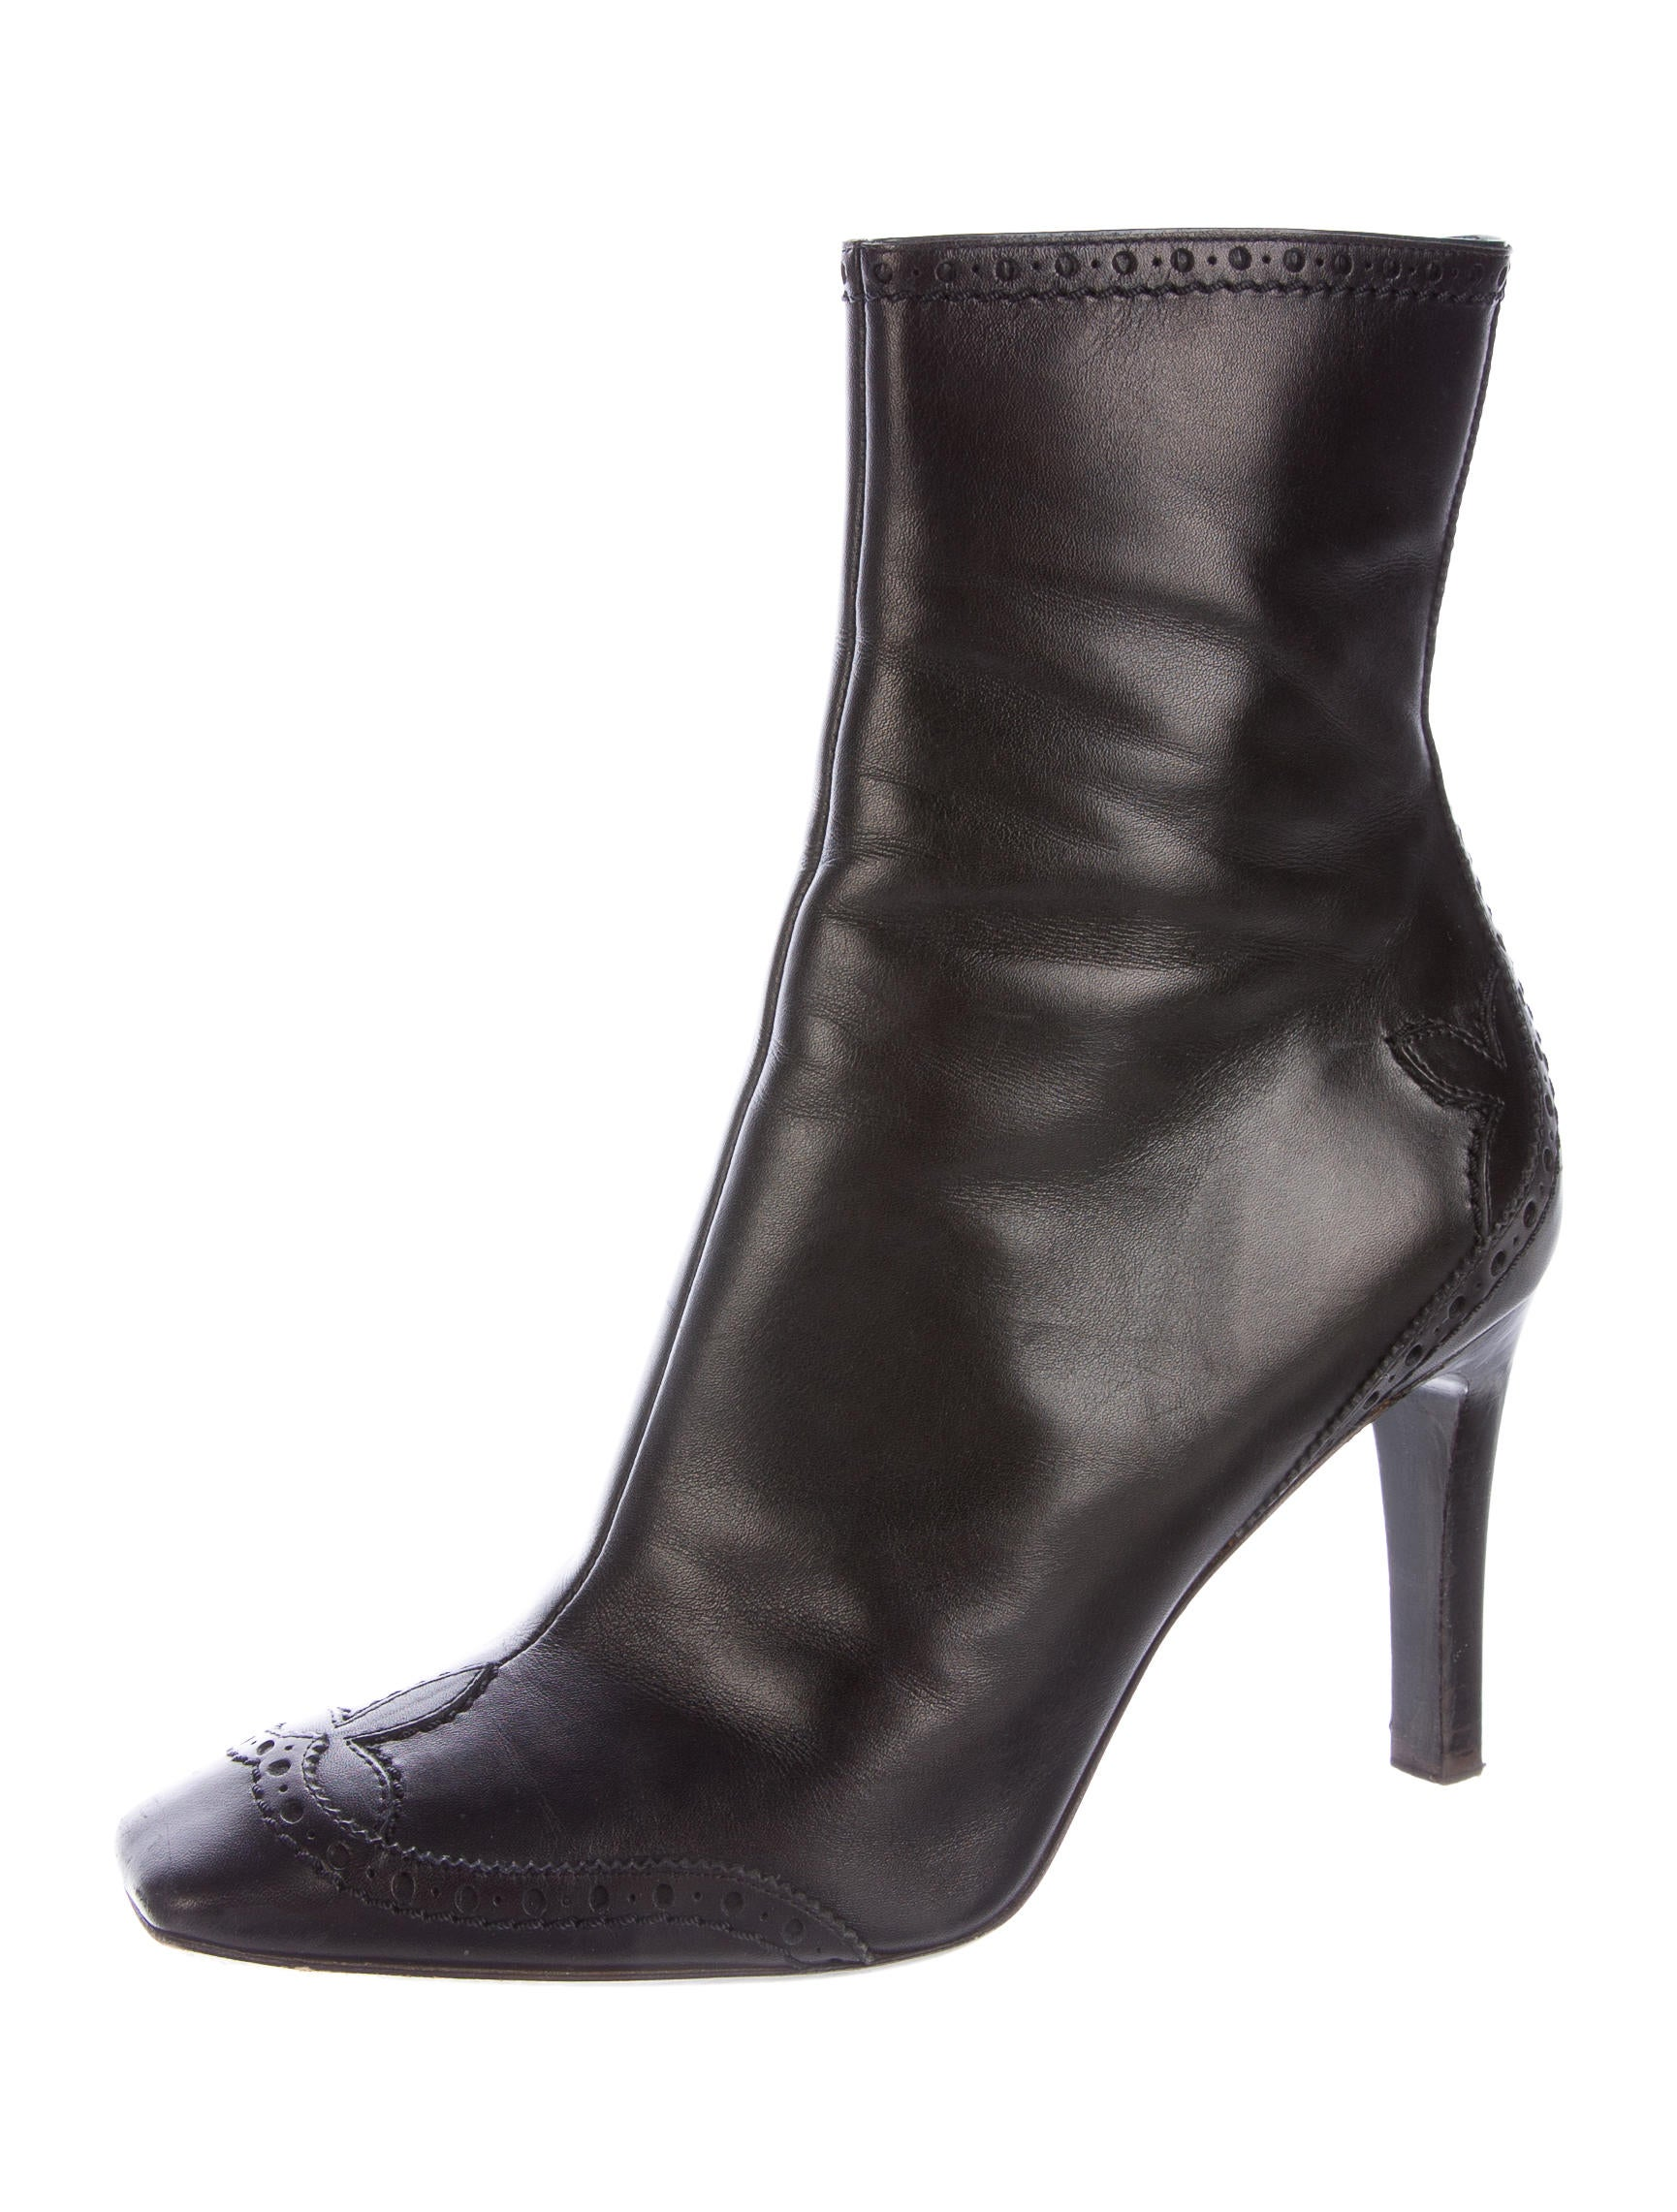 louis vuitton leather brogue ankle boots shoes